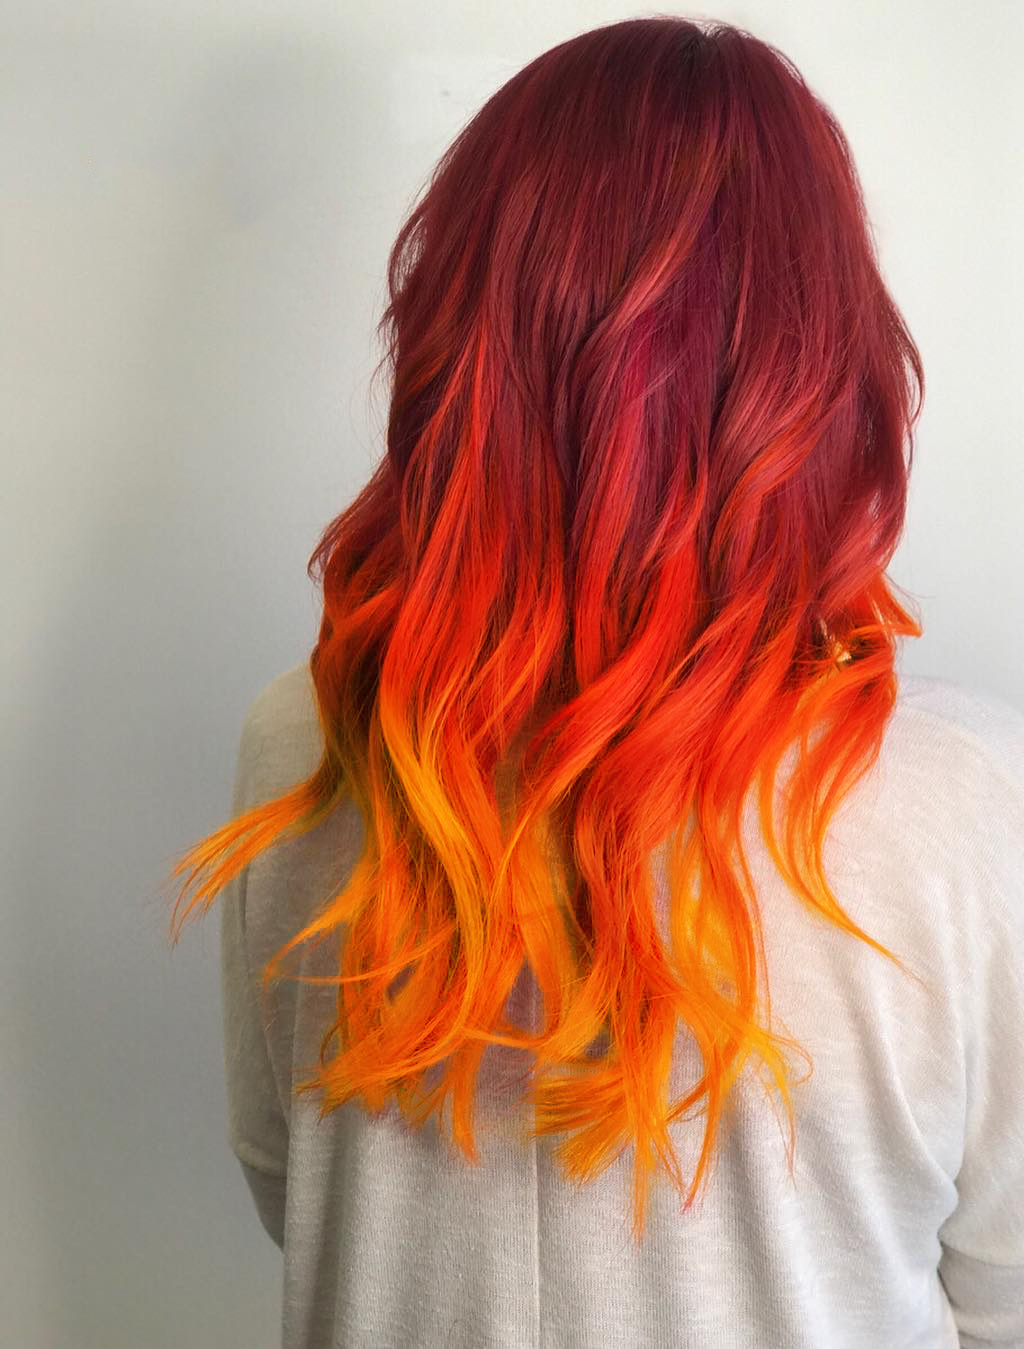 This hair is FIRE!